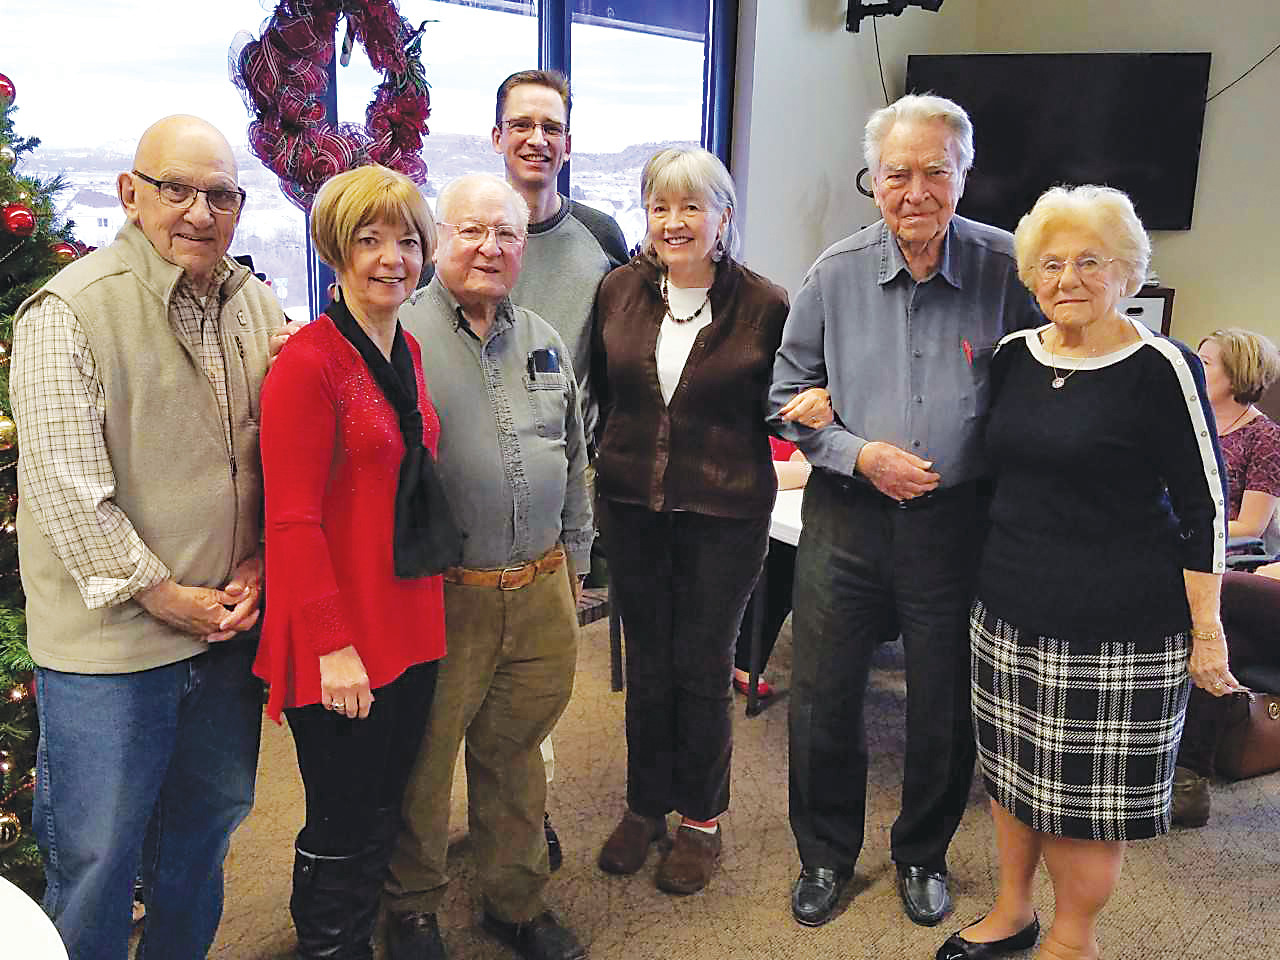 Members of the Douglas County Senior Foundation board of directors raise money each year to provide grants to local nonprofits serving seniors. From left to right: John Groom (treasurer), Sandy McCurdy (vice president), Bob Epstein (president), Brian Kirstein (secretary), Nikki Hoy, Al Wonstolen, and Marolyn Scheffel.